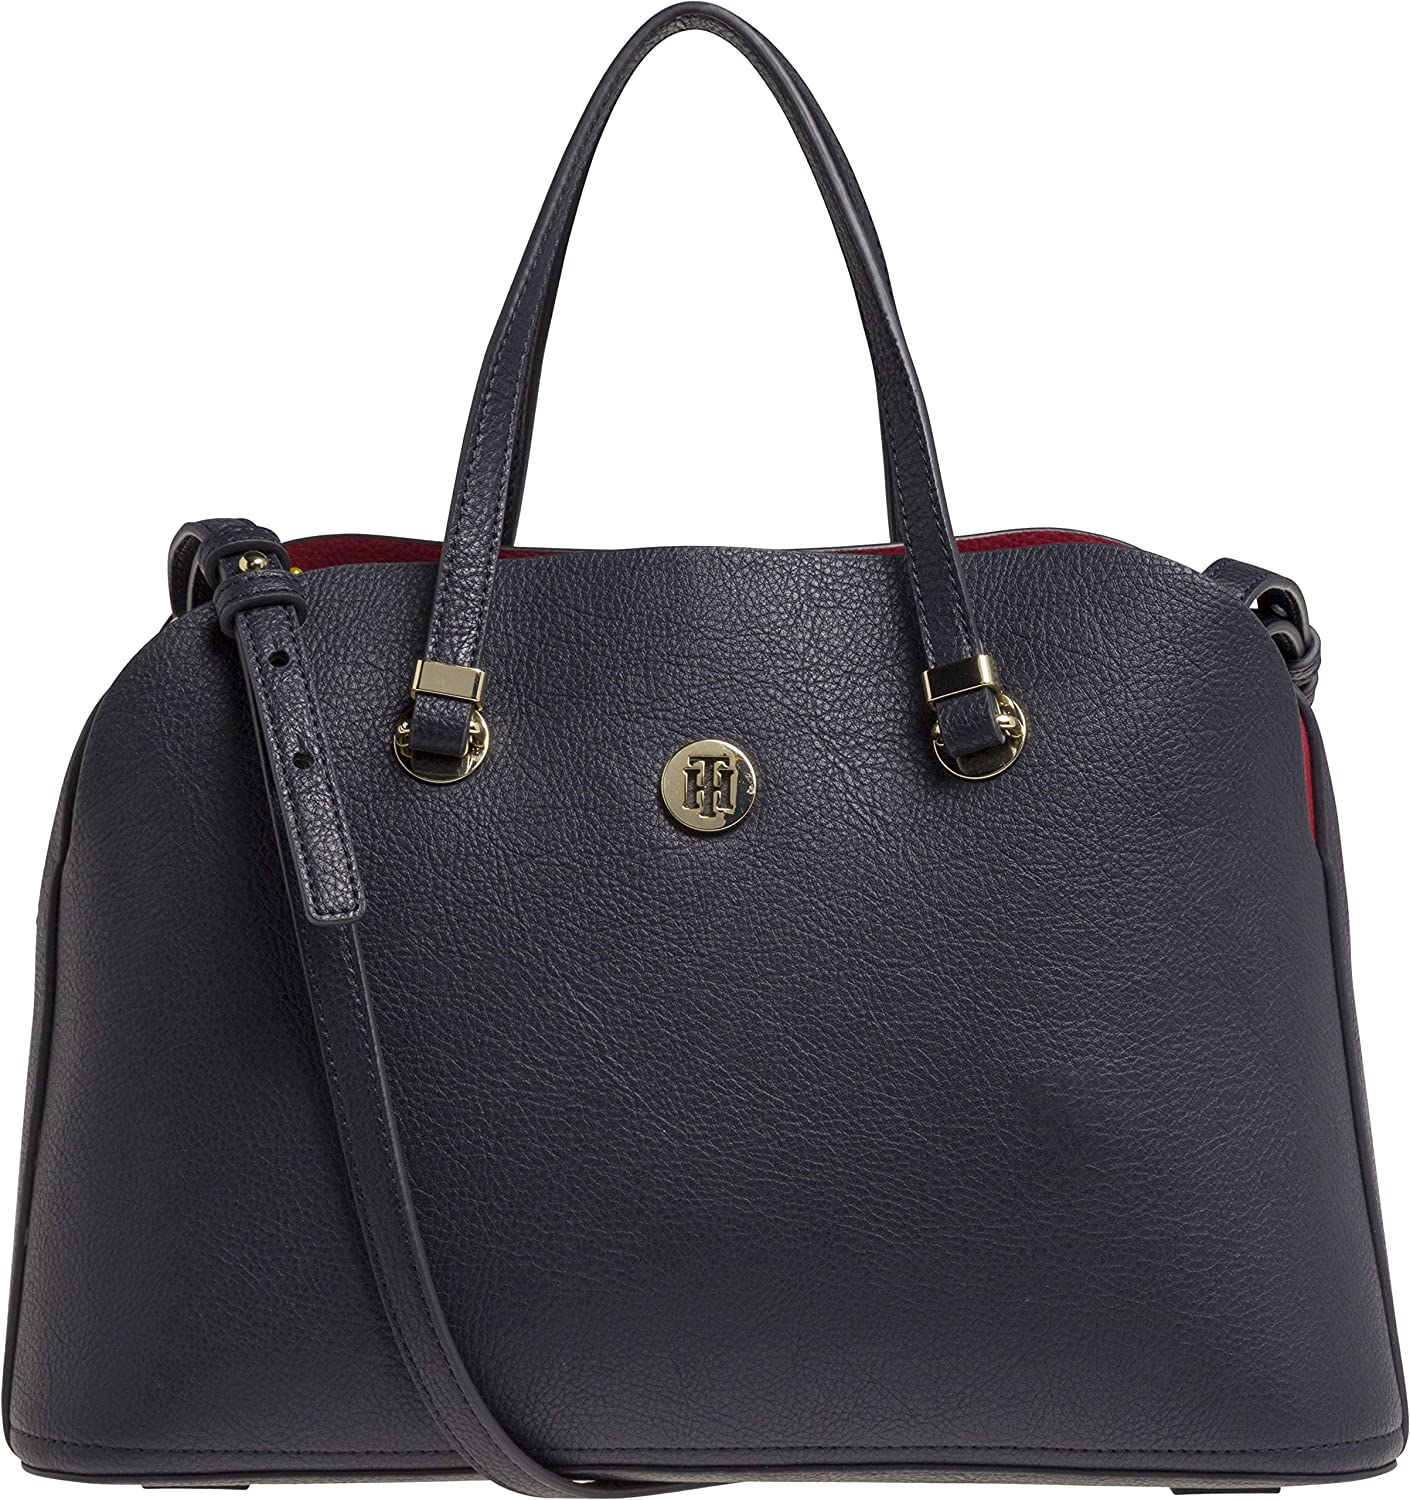 Tommy Hilfiger - Th Core Satchel, cartera Mujer, Azul (Tommy Navy), 15x24x34 cm (B x H T): Amazon.es: Zapatos y complementos